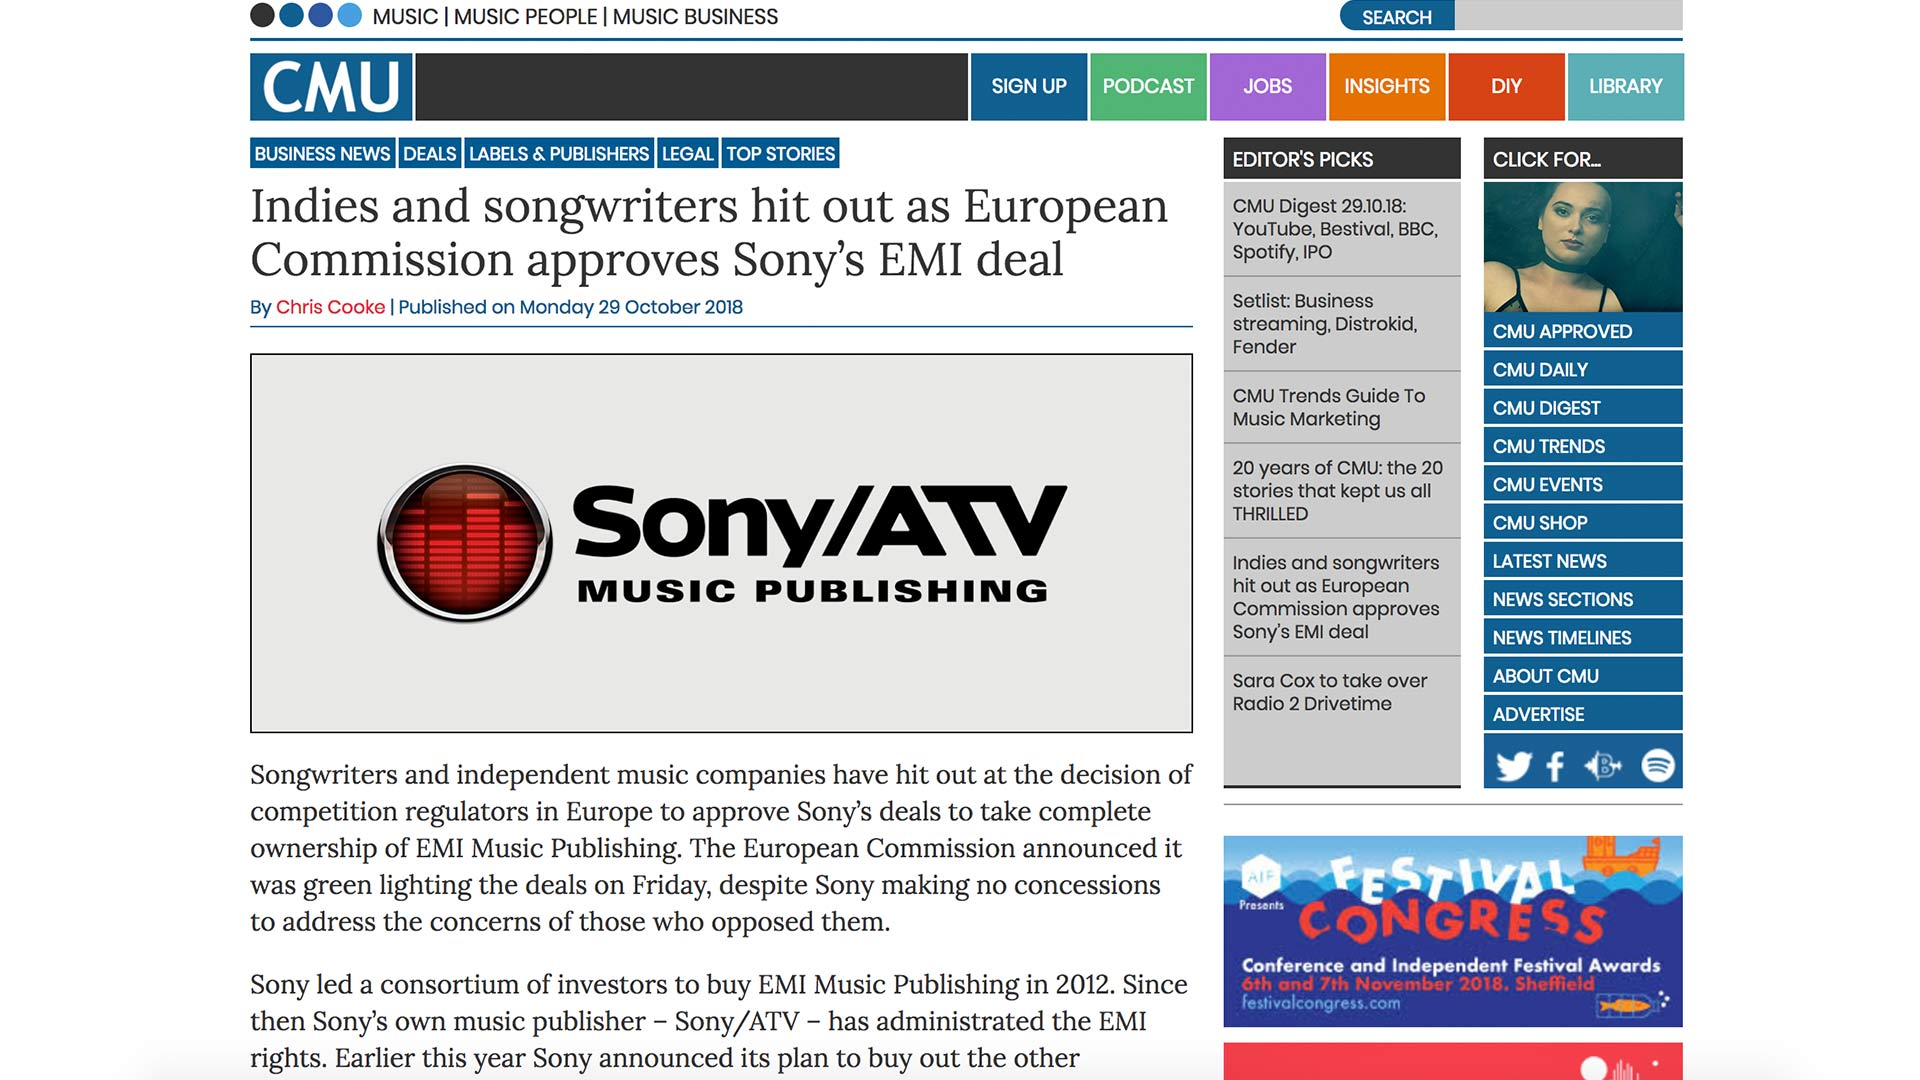 Fairness Rocks News Indies and songwriters hit out as European Commission approves Sony's EMI deal